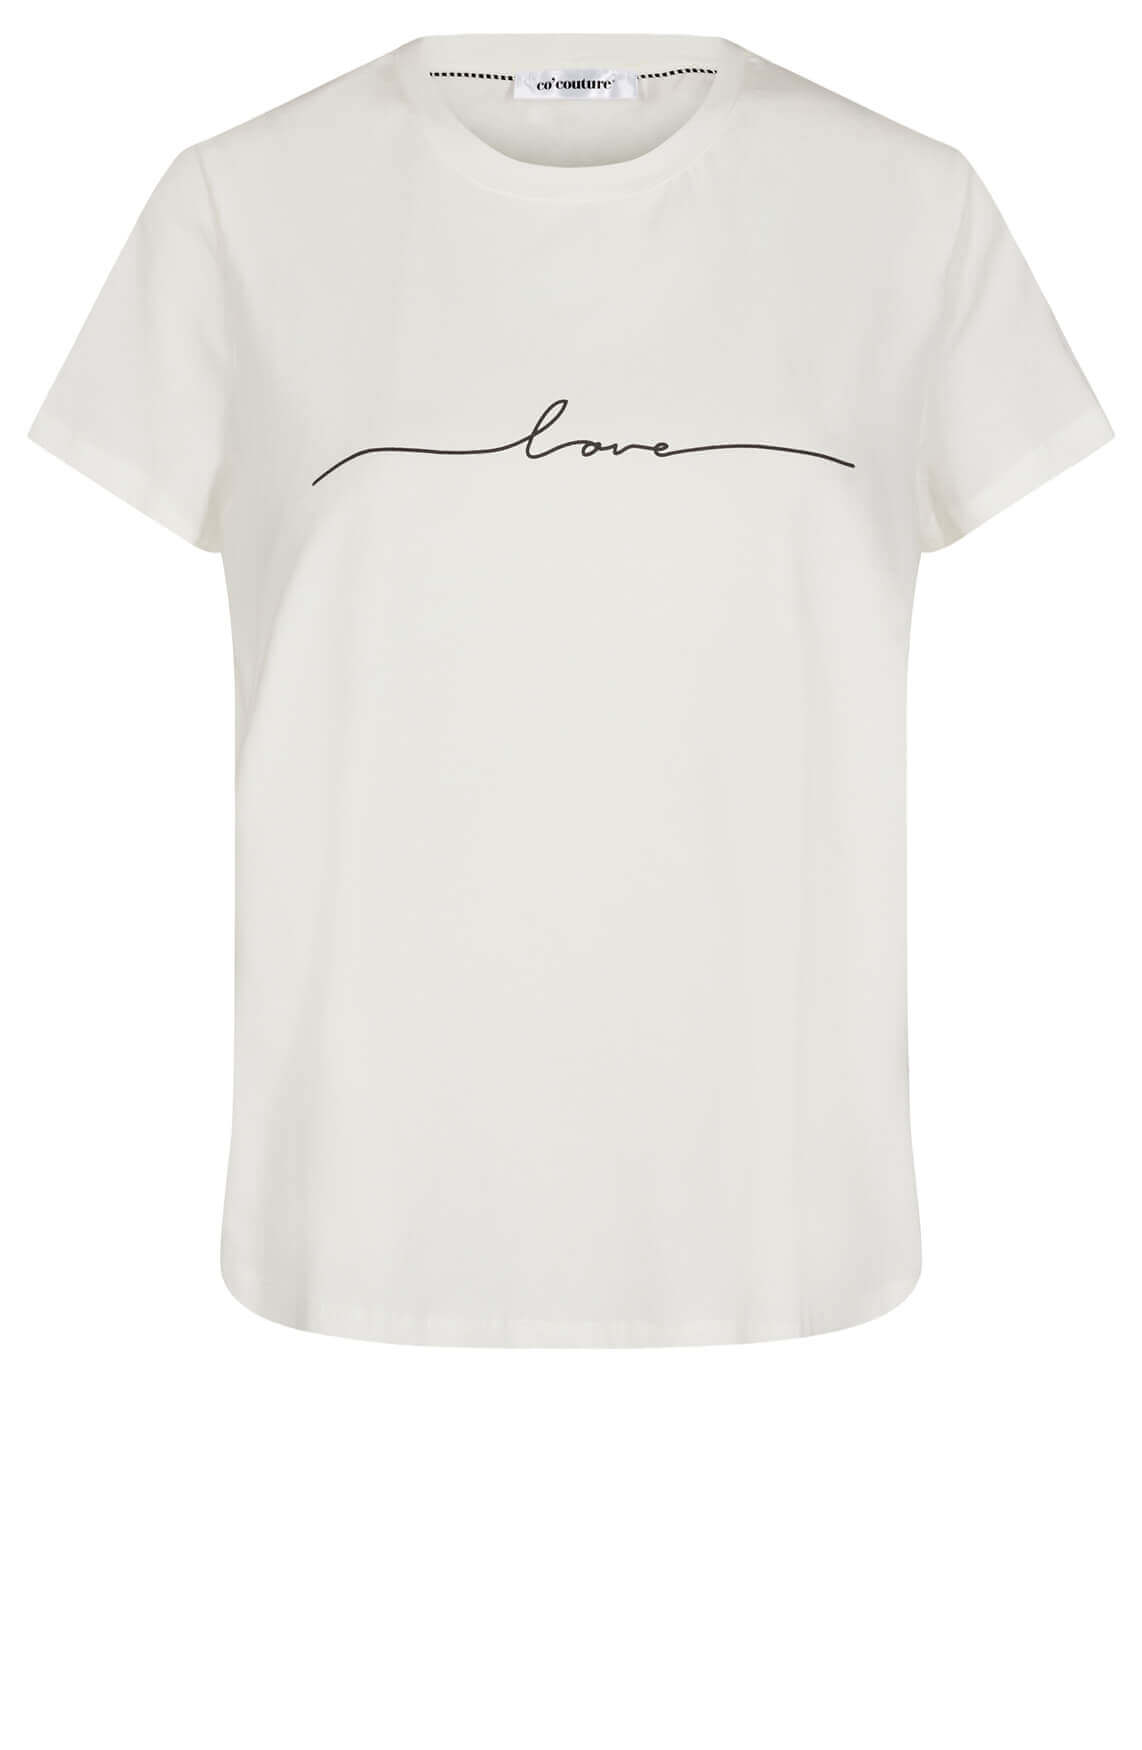 Co Couture Dames Naya love shirt wit